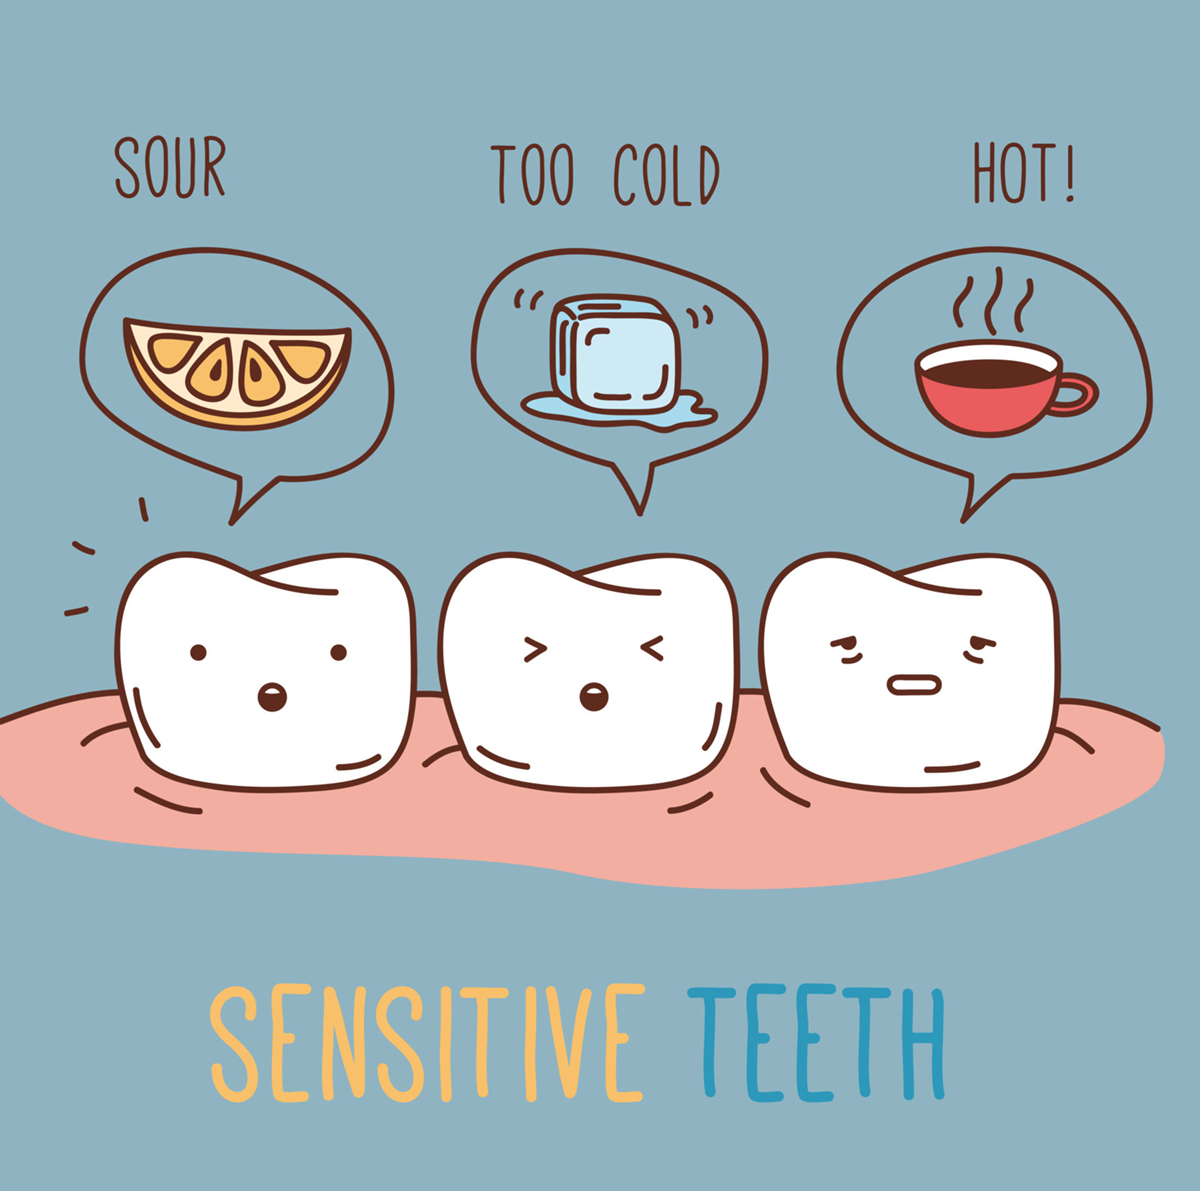 Teeth Sensitivity – Causes and Relief